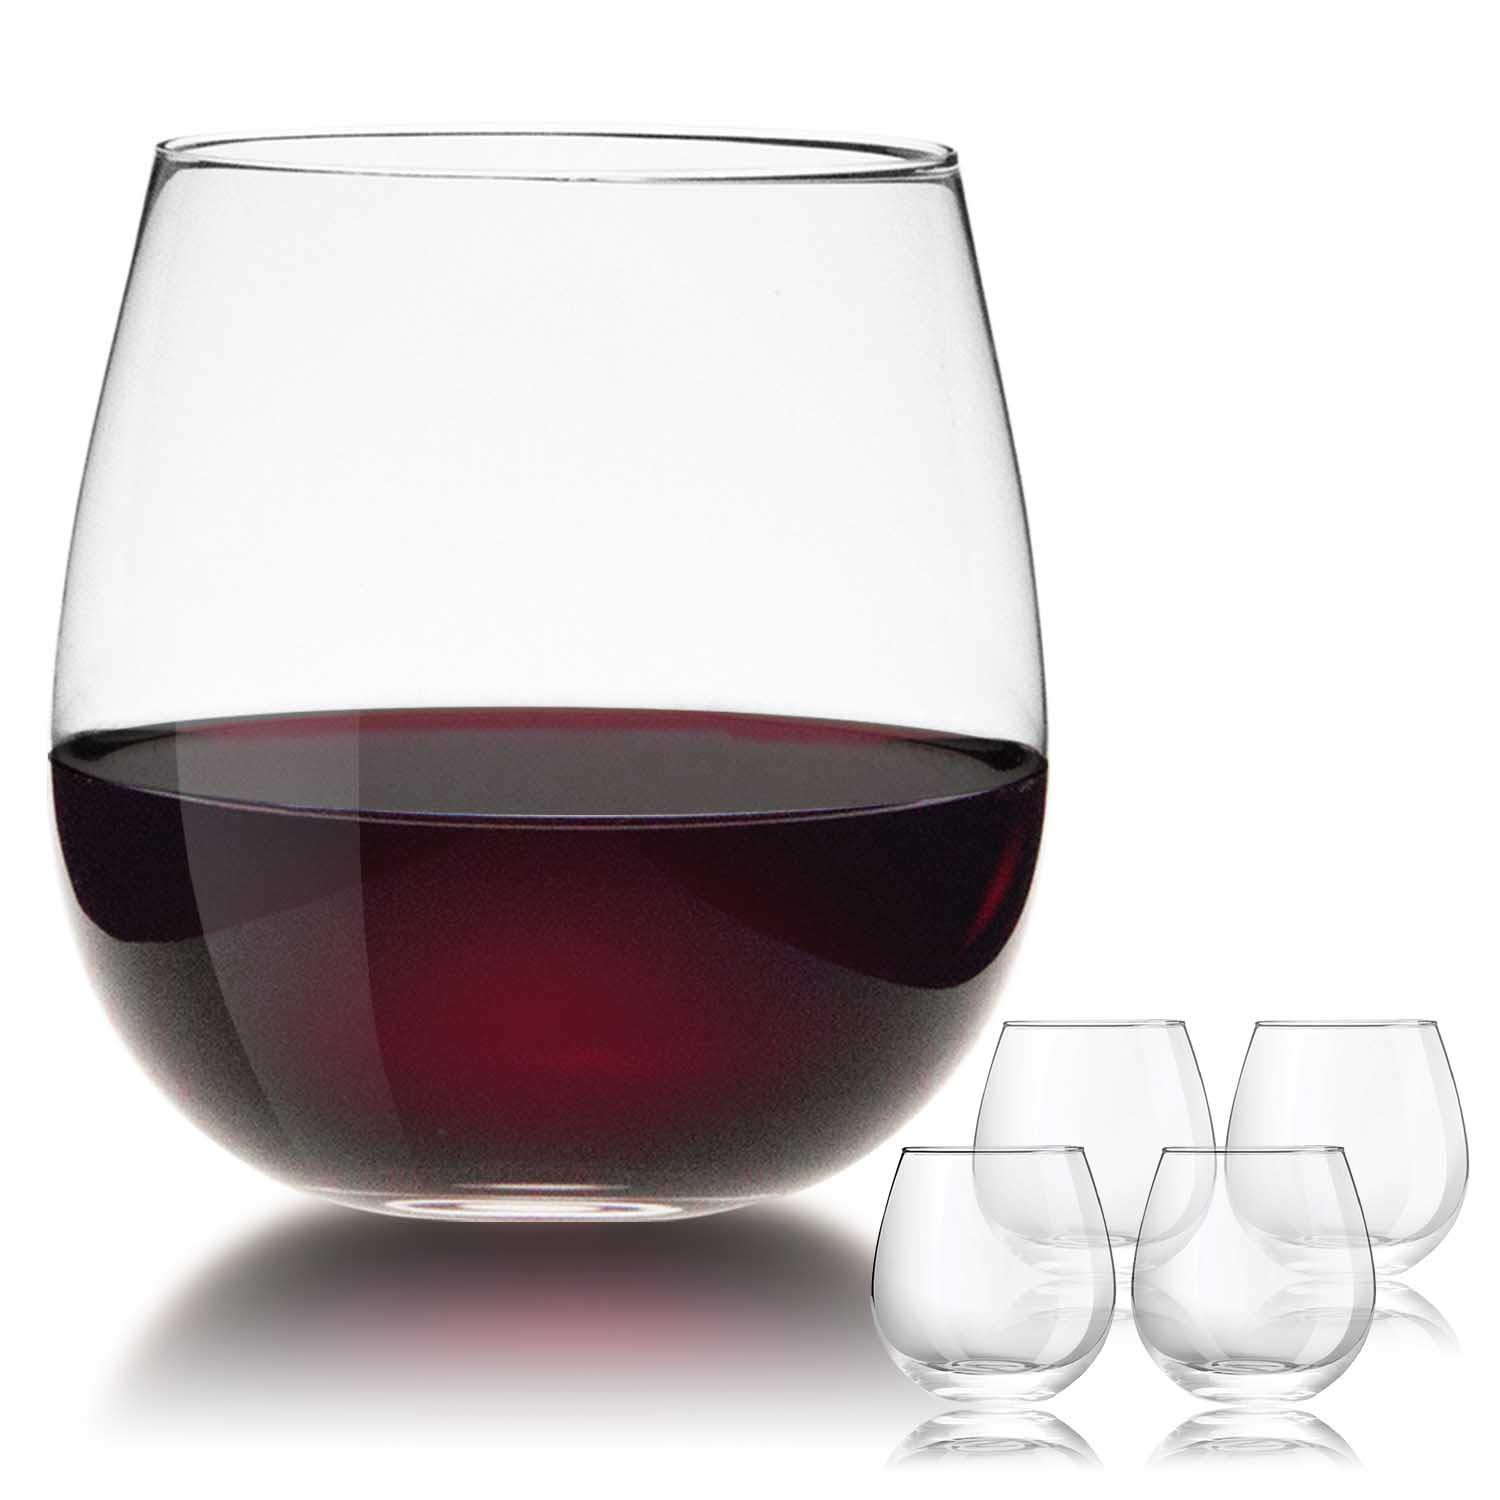 JBHome Hand Made Crystal Stemless Wine Glasses 15oz, Set of 4, For White/Red Wine, Perfect Handhold for Swirling, Wine Glass Set in a Gift Box